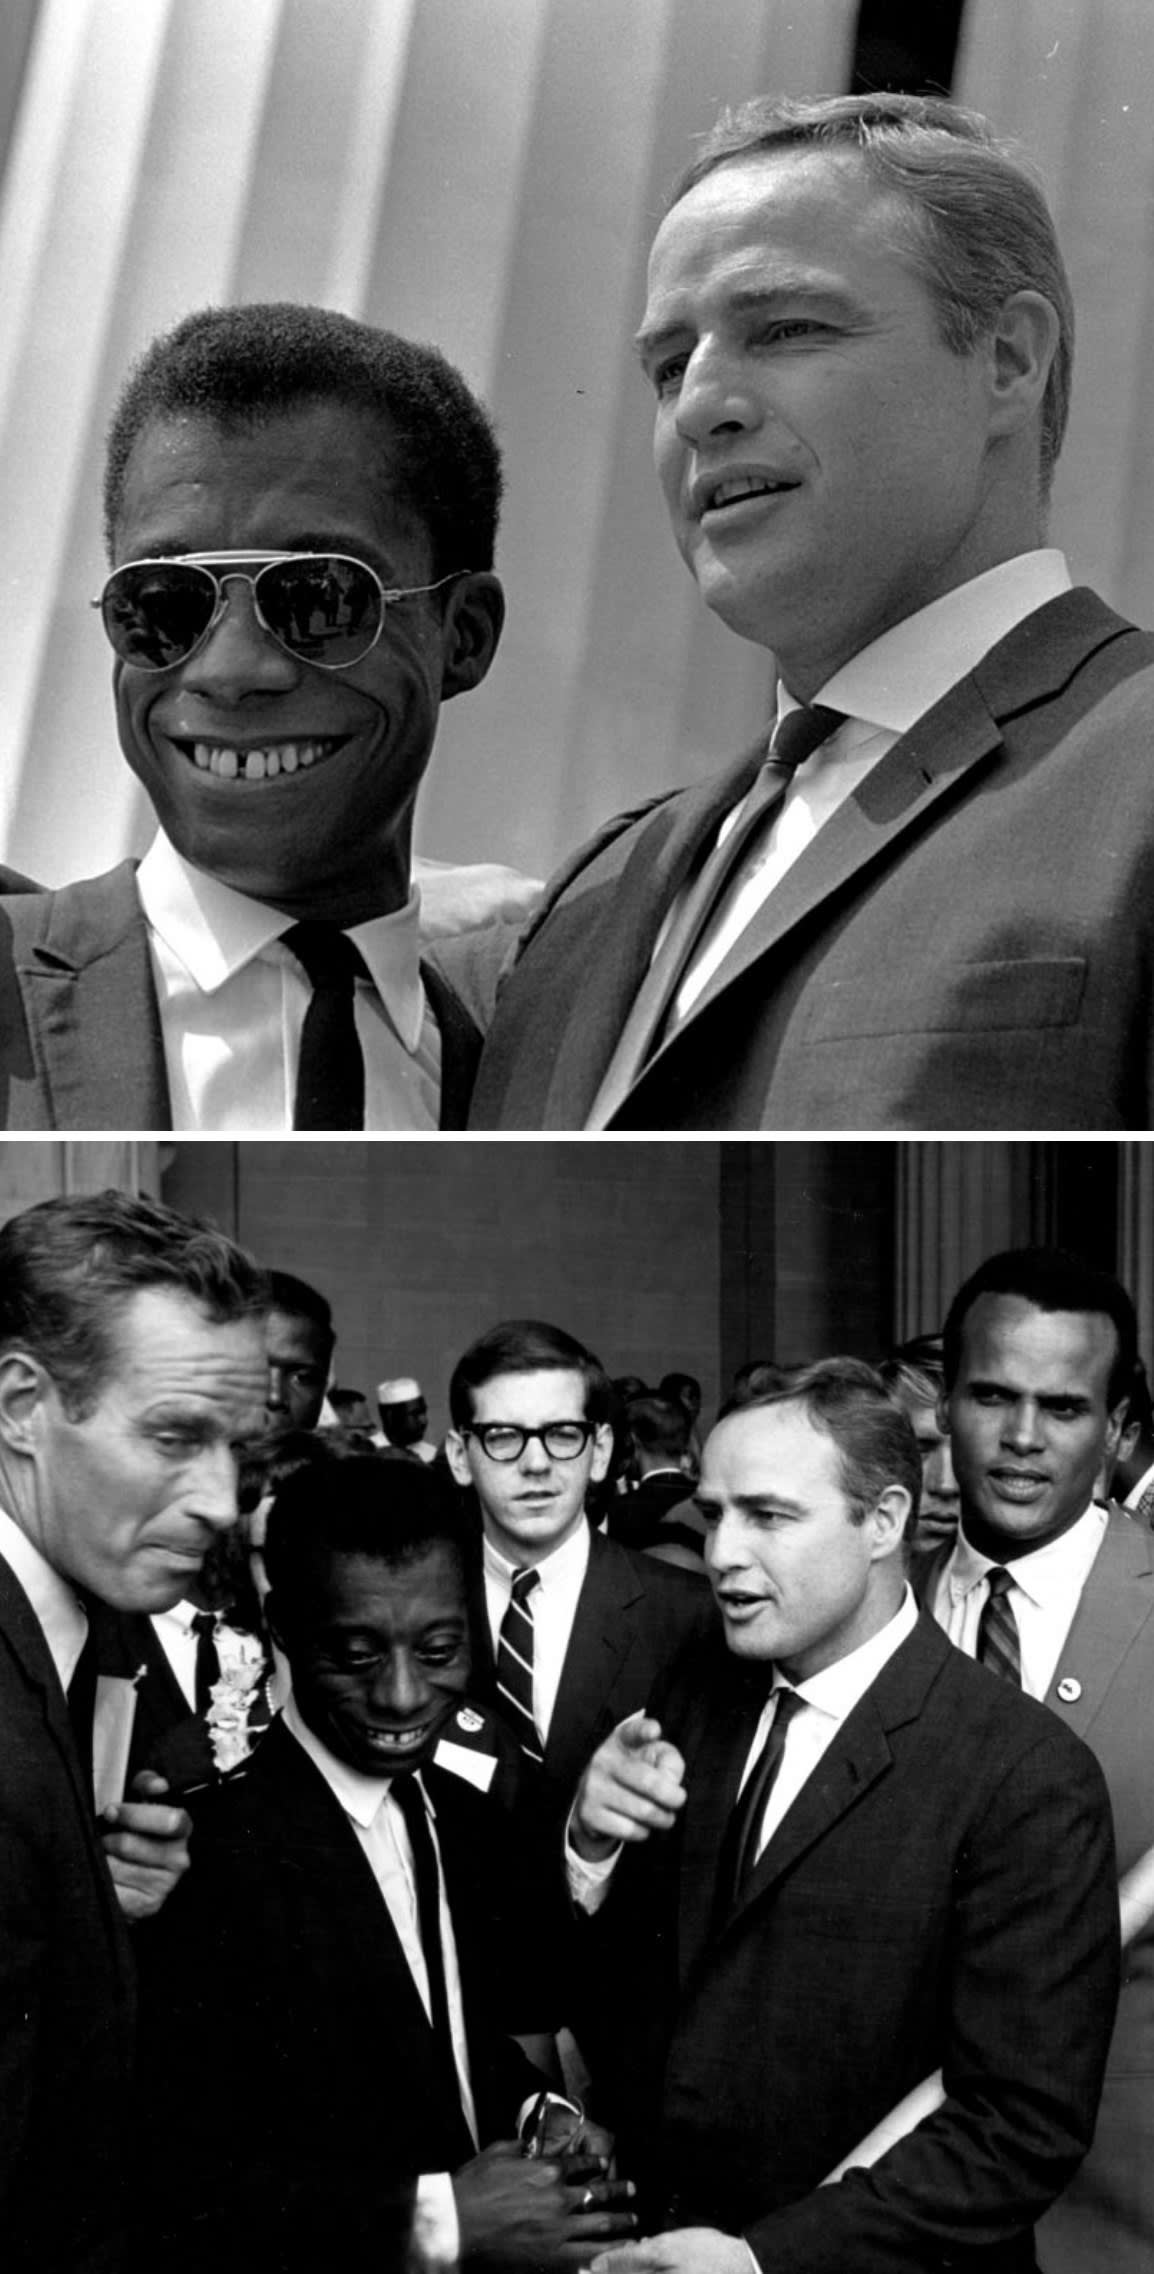 Baldin and Brando at the Lincoln Memorial during the March on Washington for Jobs and Freedom in 1963